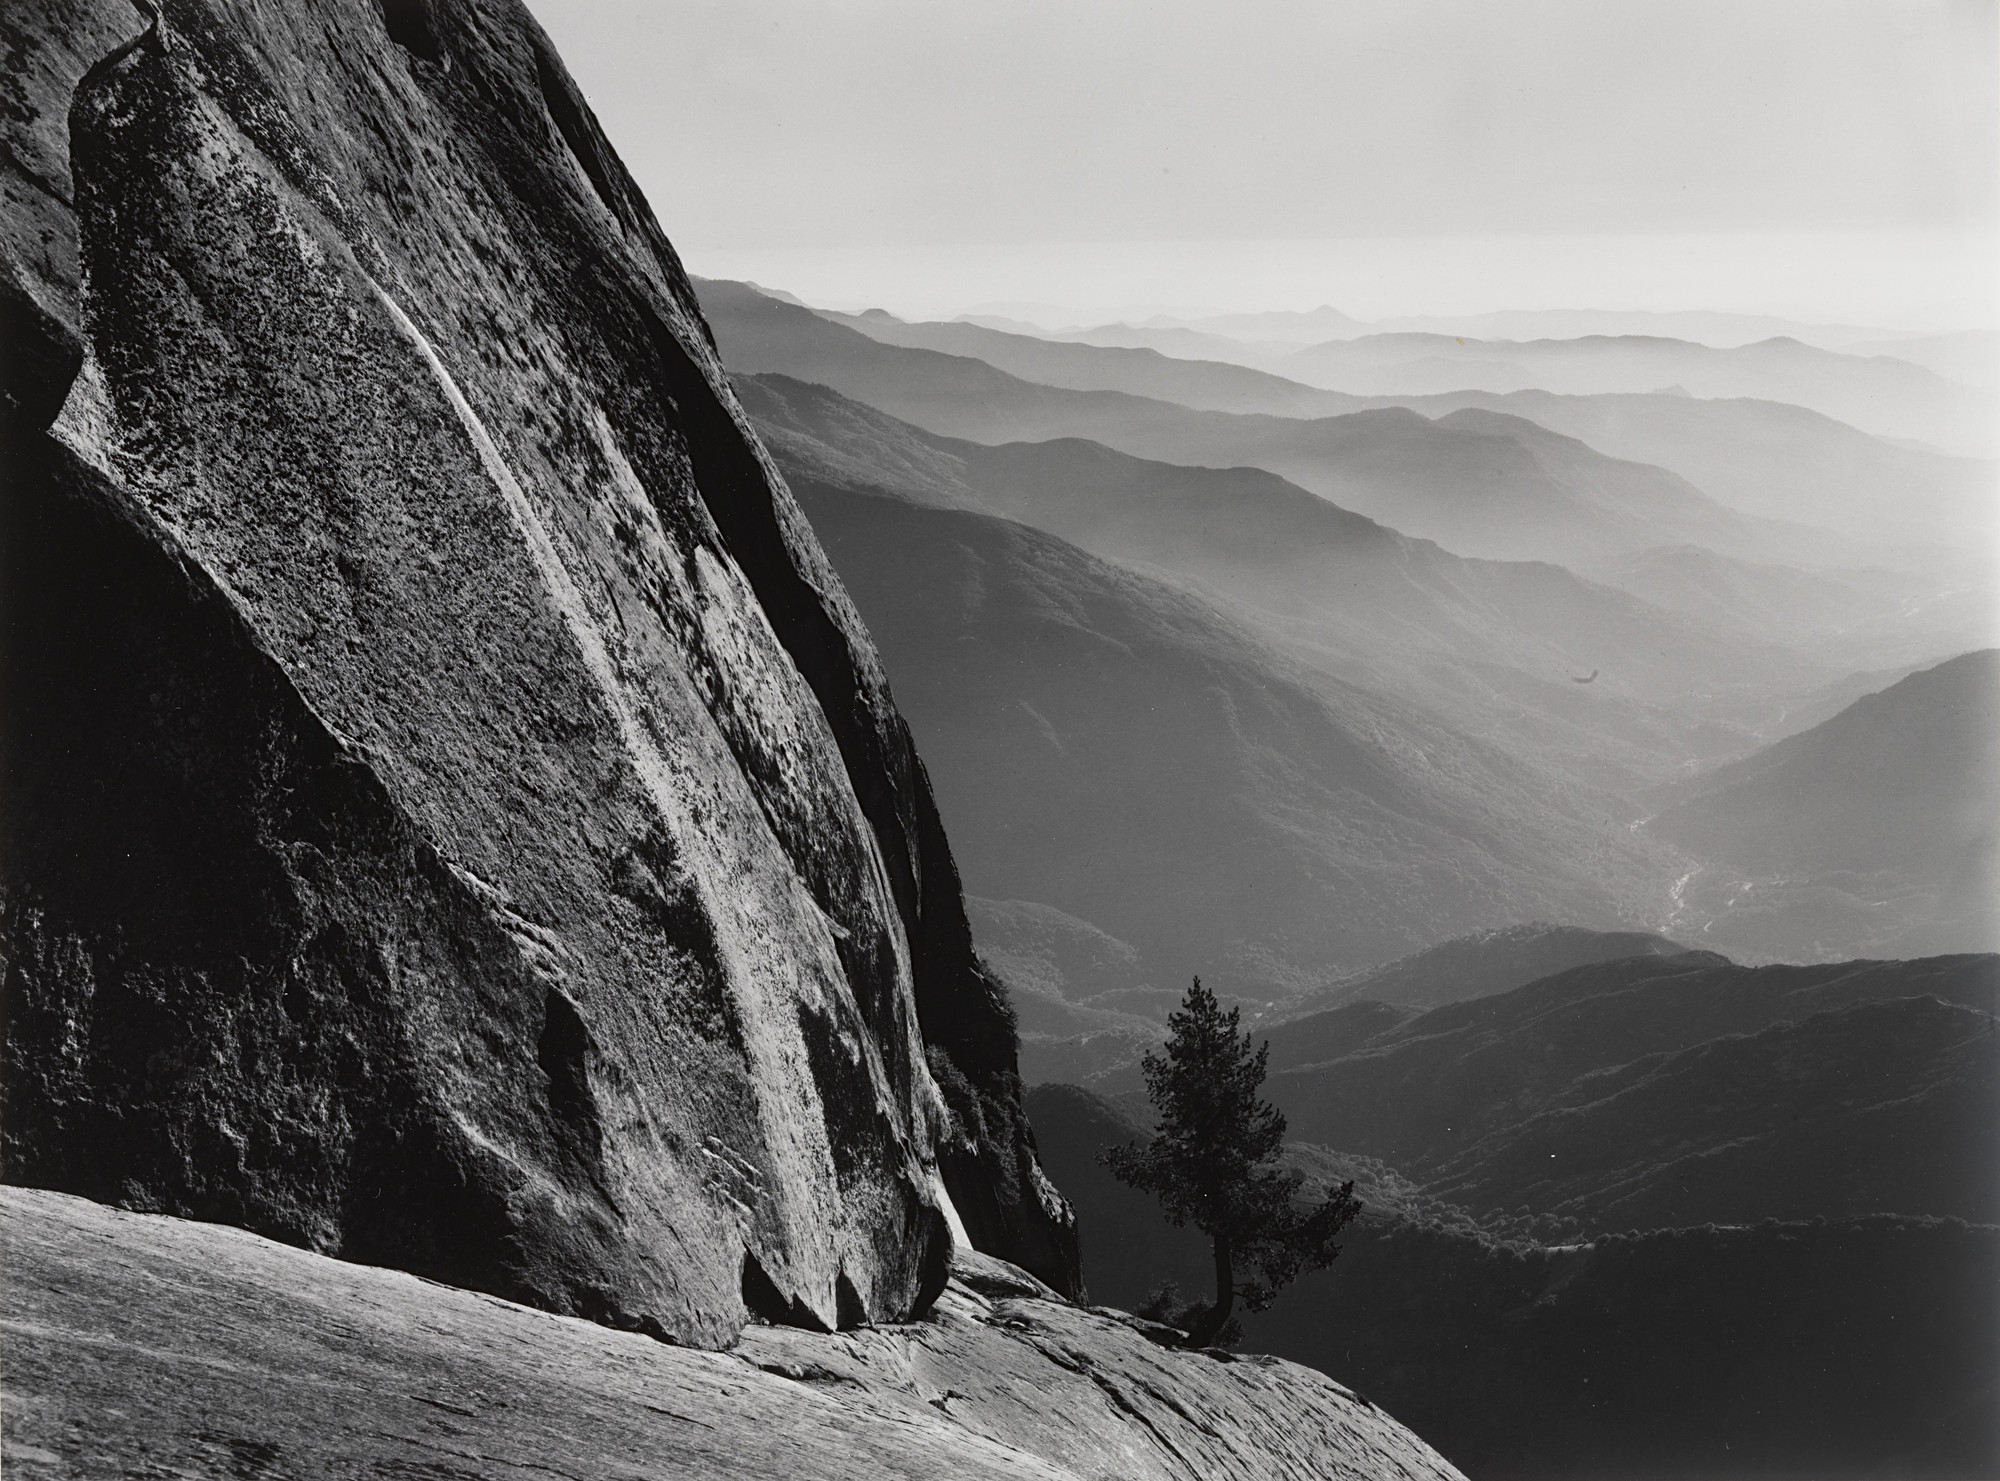 Ansel Adams. Moro Rock, Sequoia National Park and Sierra Foothills, California. c. 1945